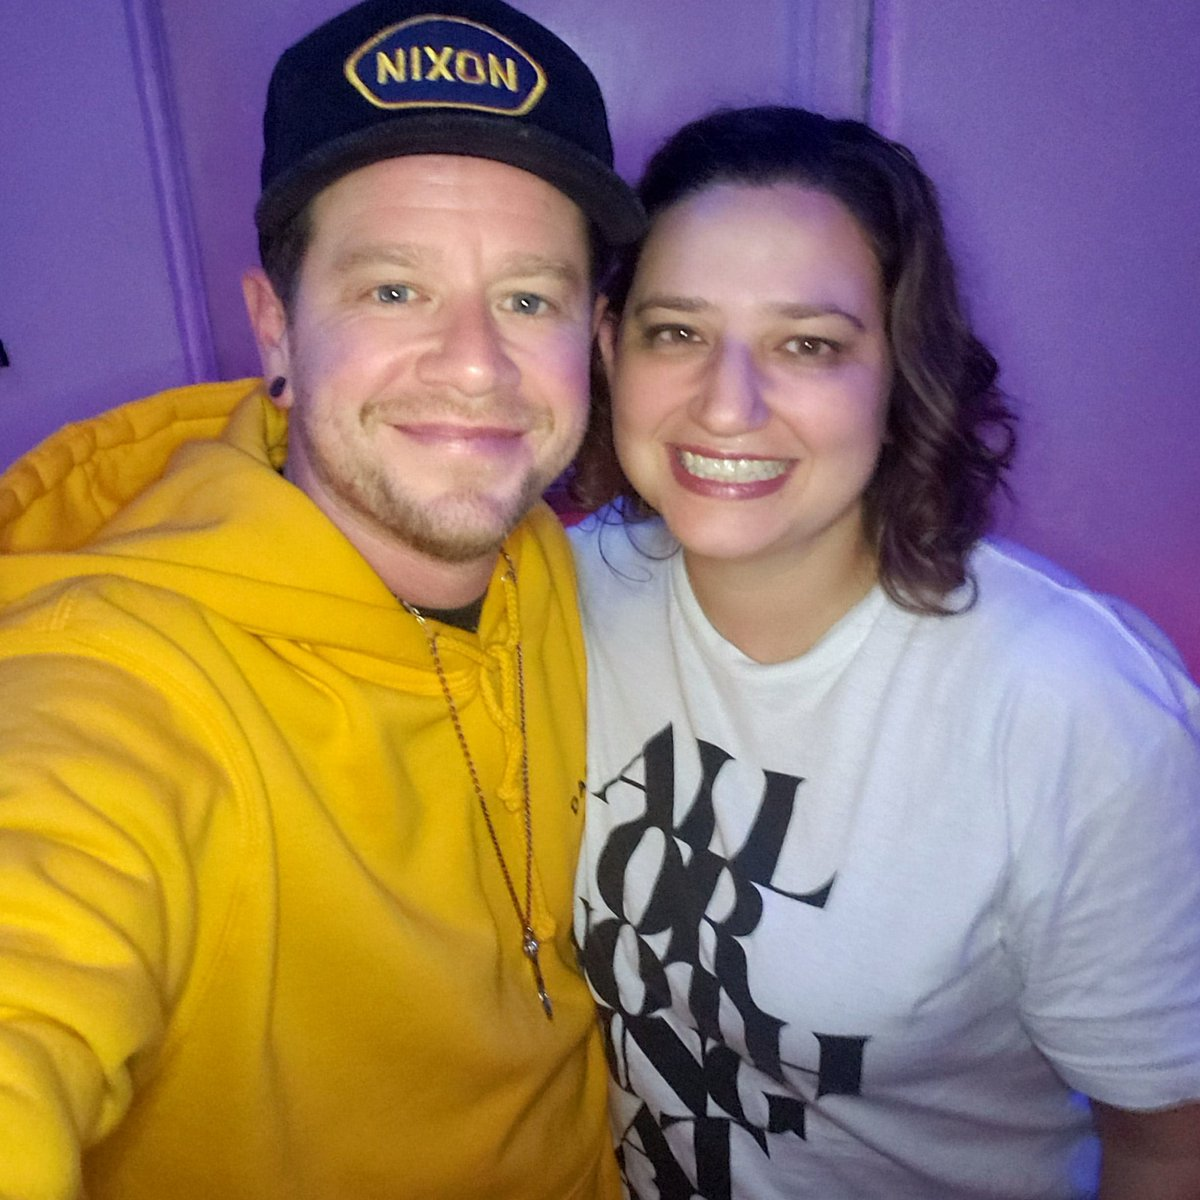 What I wouldn't give to see @jacobunderwood7 #yellowsweatshirt right now. Miss you Jake !   #jacobtuesday #jacobsoon #otownofficial #supportyourfavoriteband #howmanydoesheown? #atleast2 #pop2000tour #harrisburgpapic.twitter.com/iCqTyN1Sjn